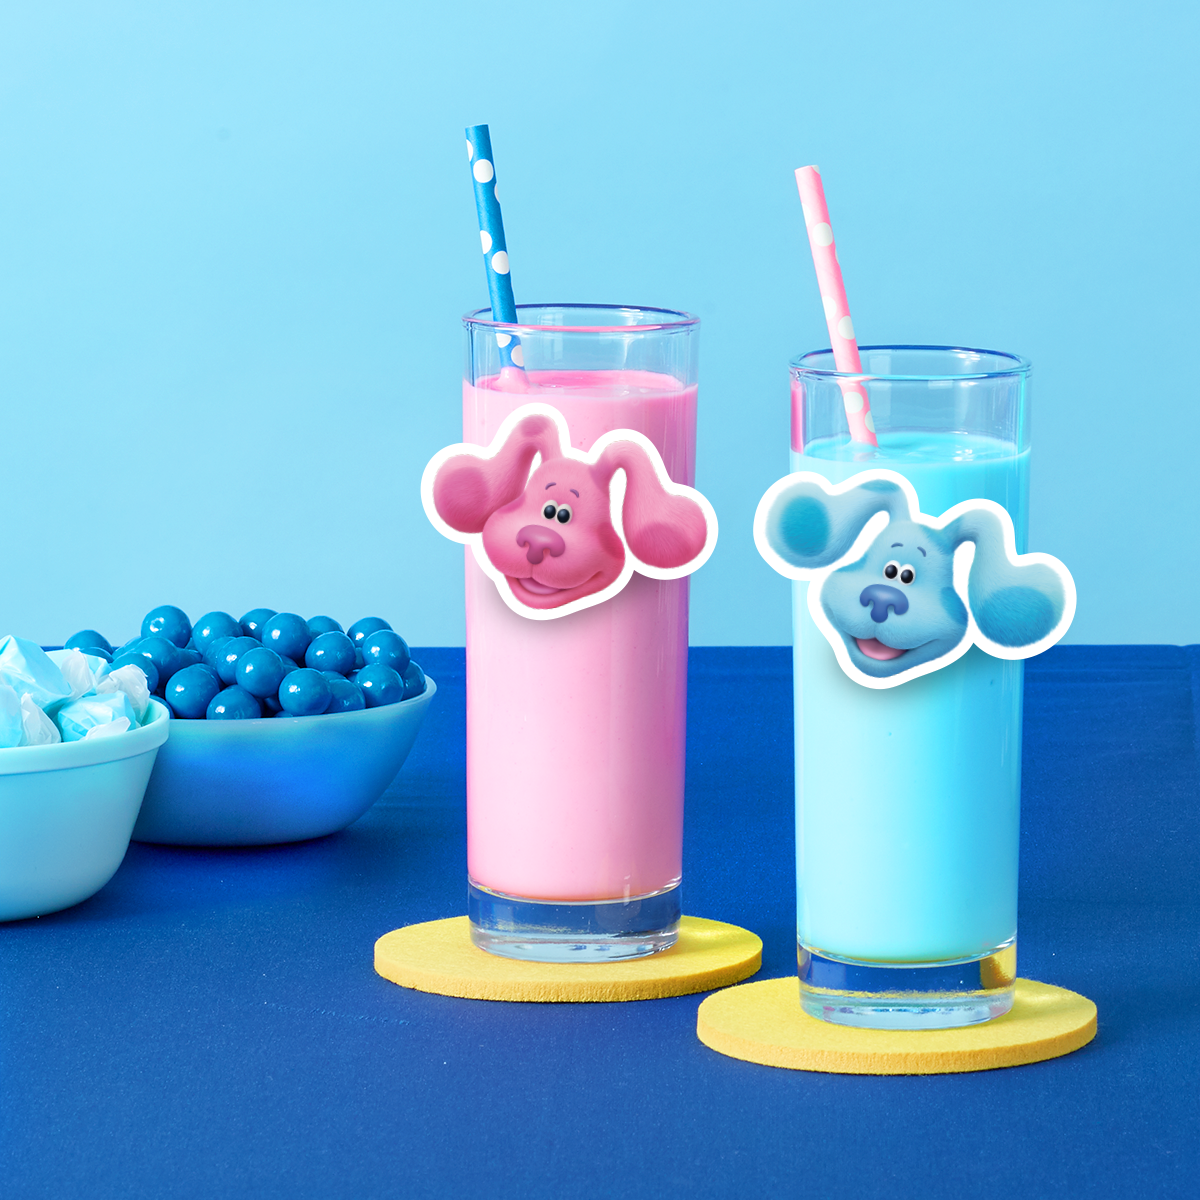 Blue's Clues & You! Smoothie